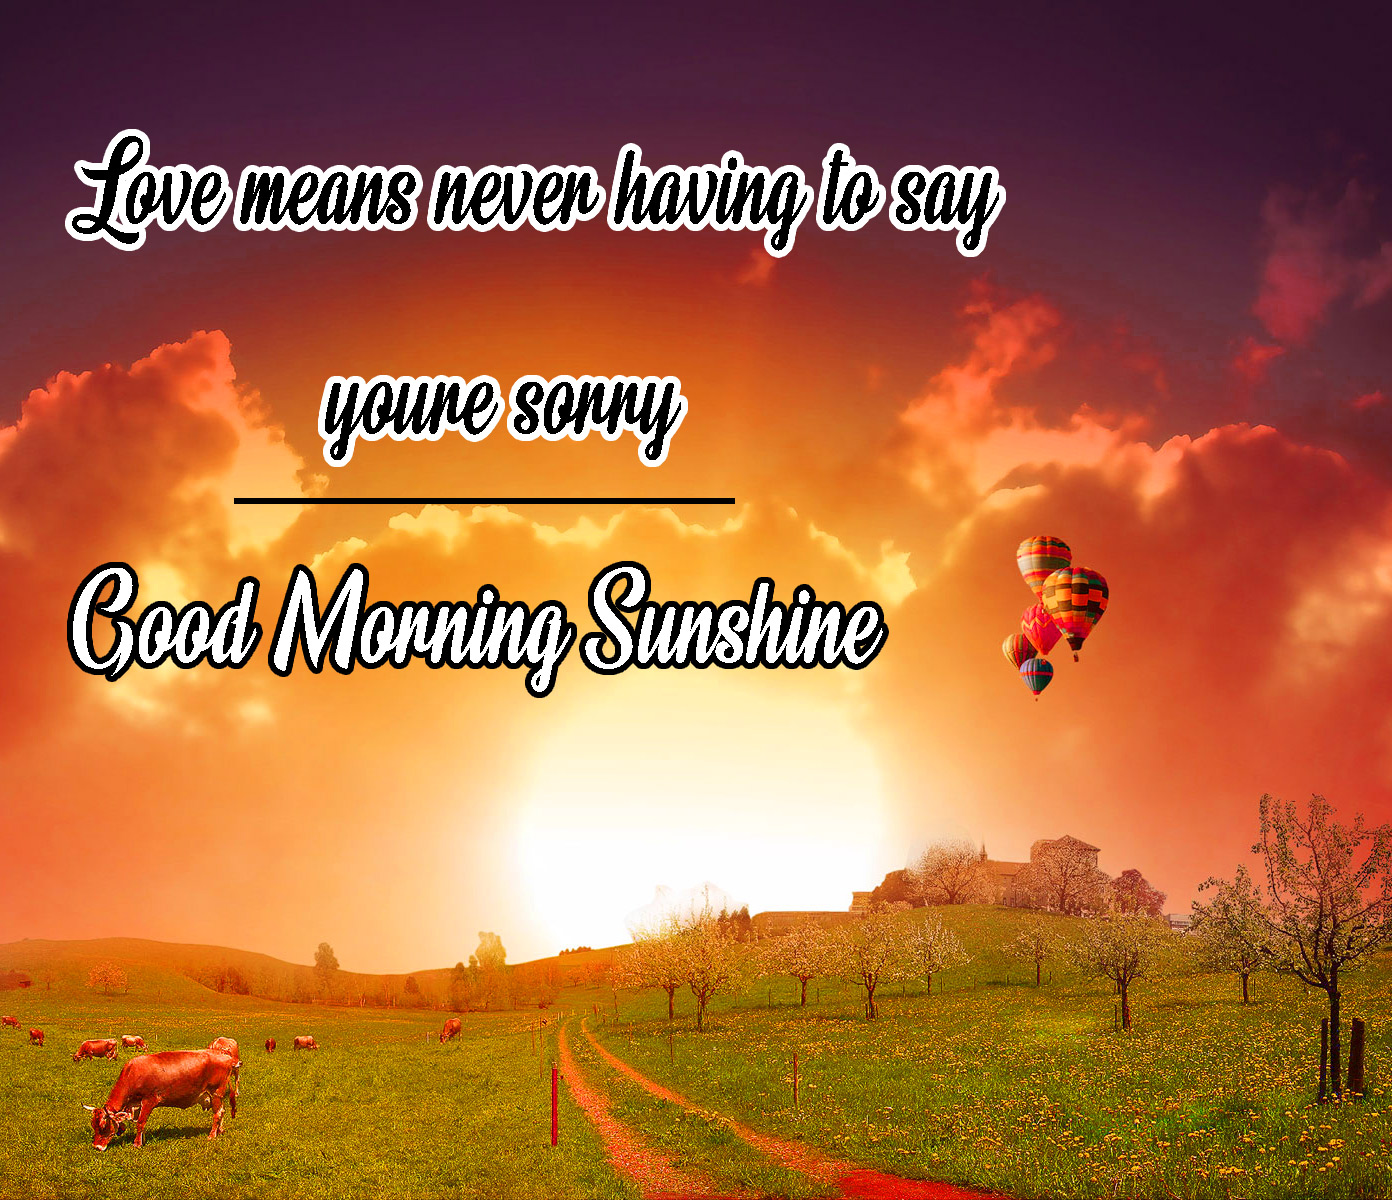 Sunsine Good Morning Images Pics Free Download